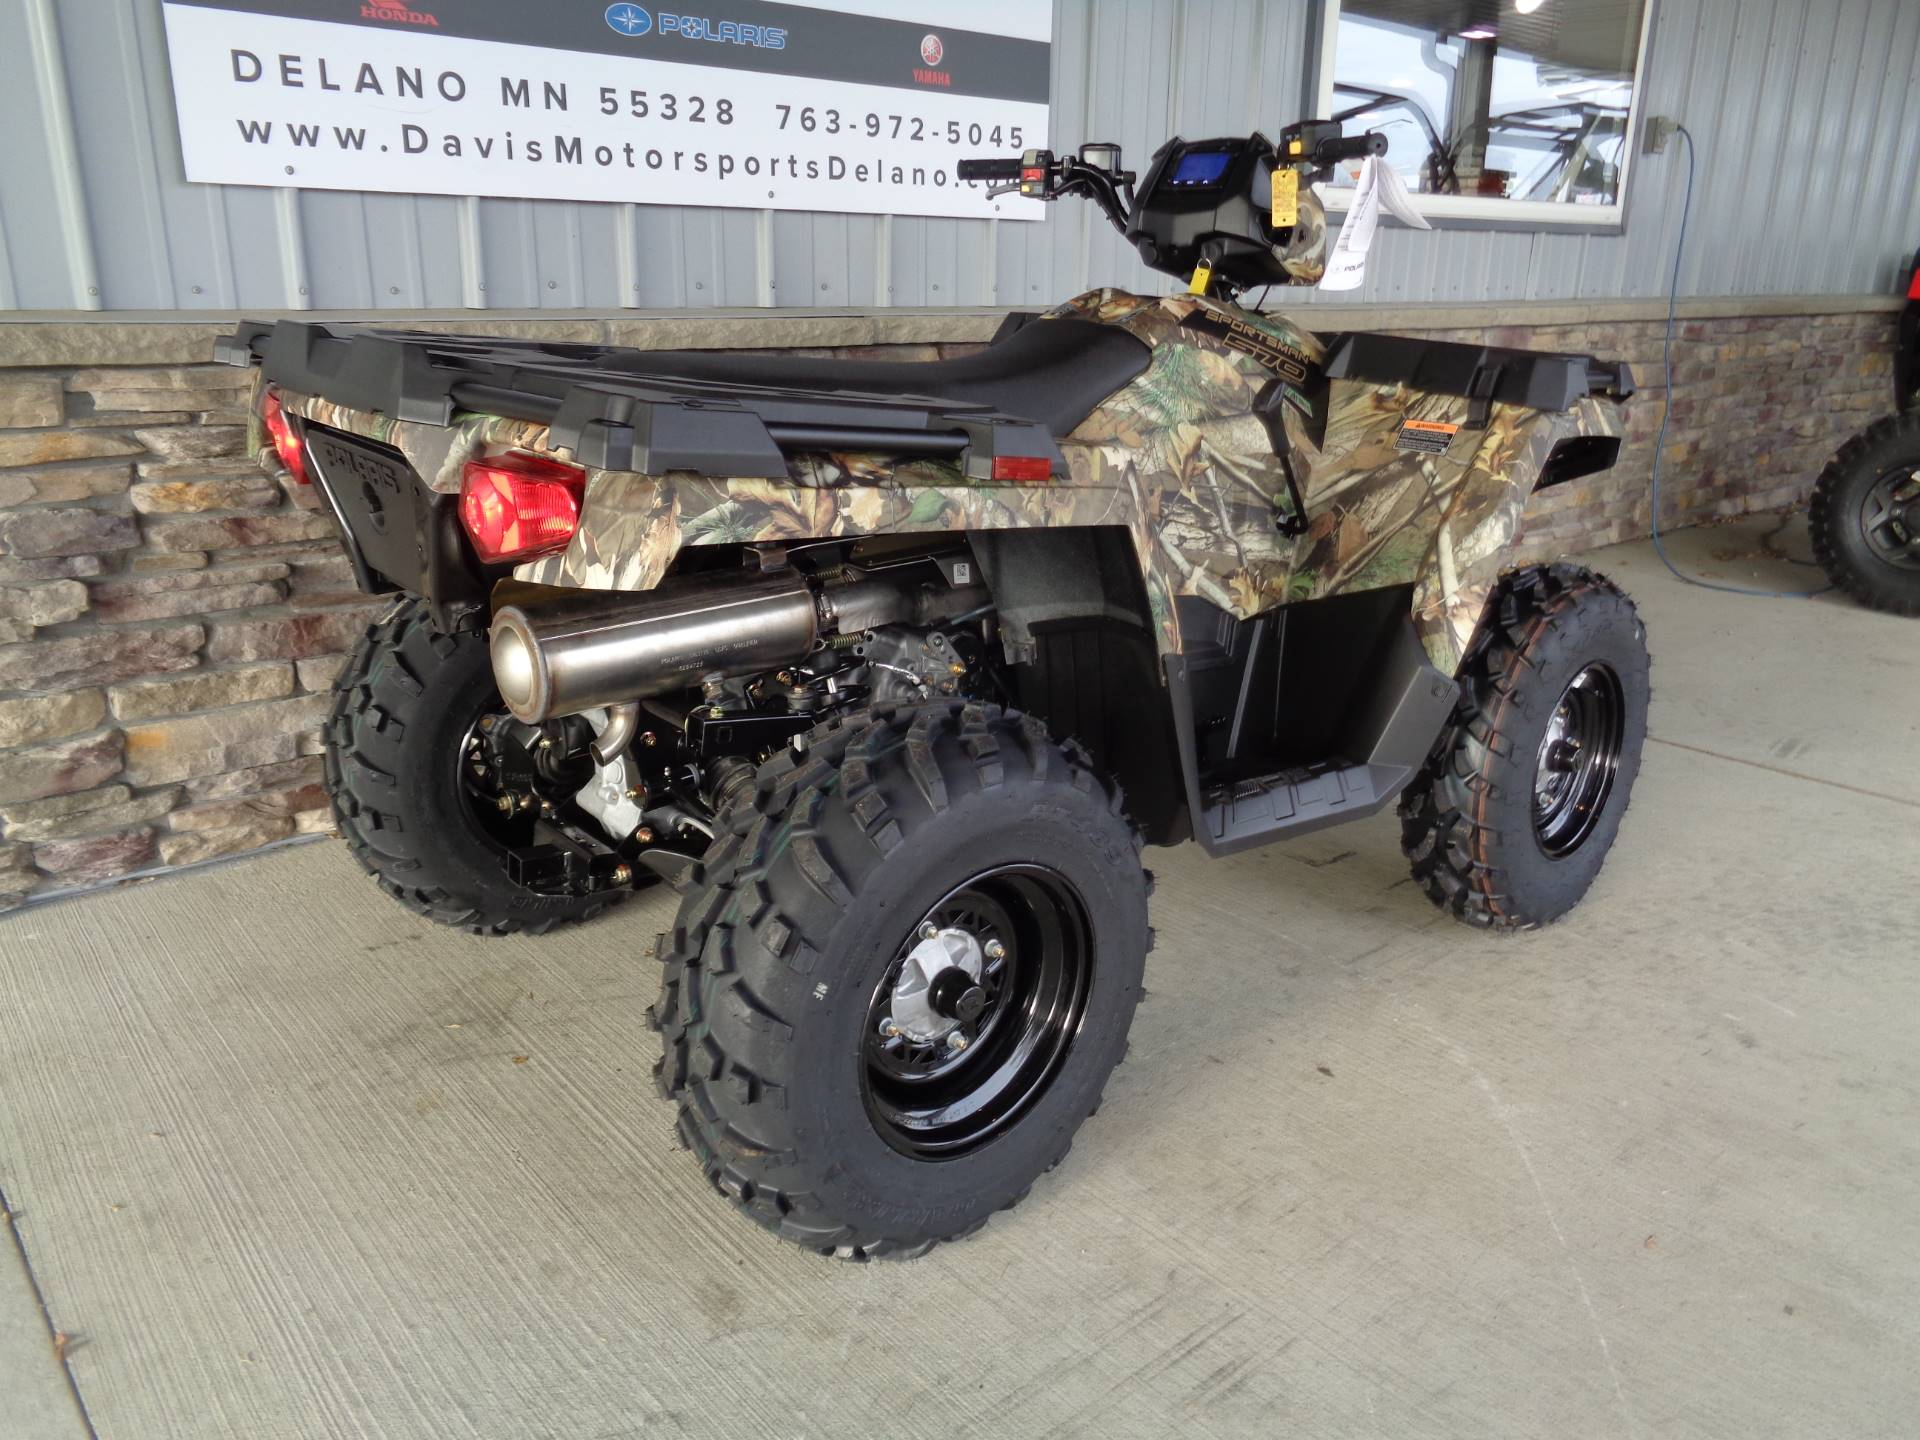 2019 Polaris Sportsman 570 Camo in Delano, Minnesota - Photo 5